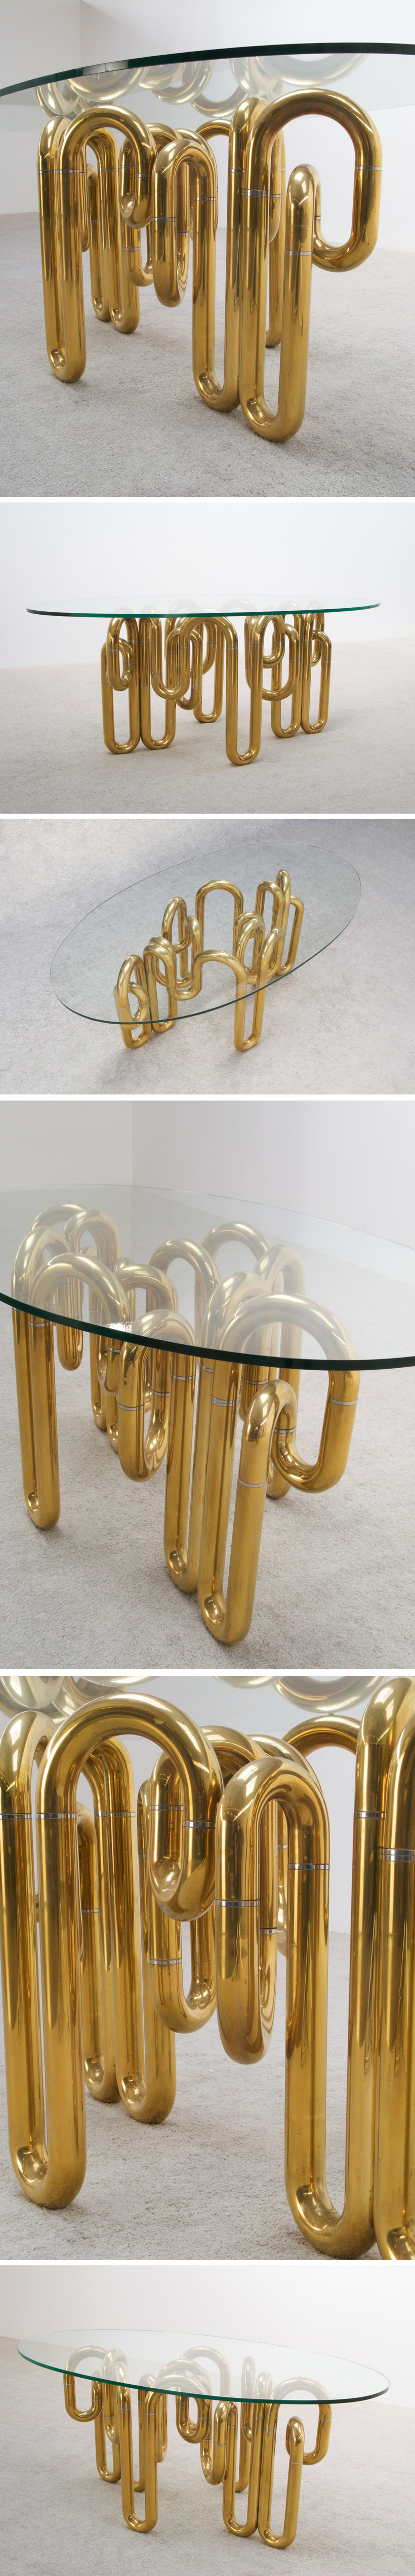 Trombone exceptional dinning table Large